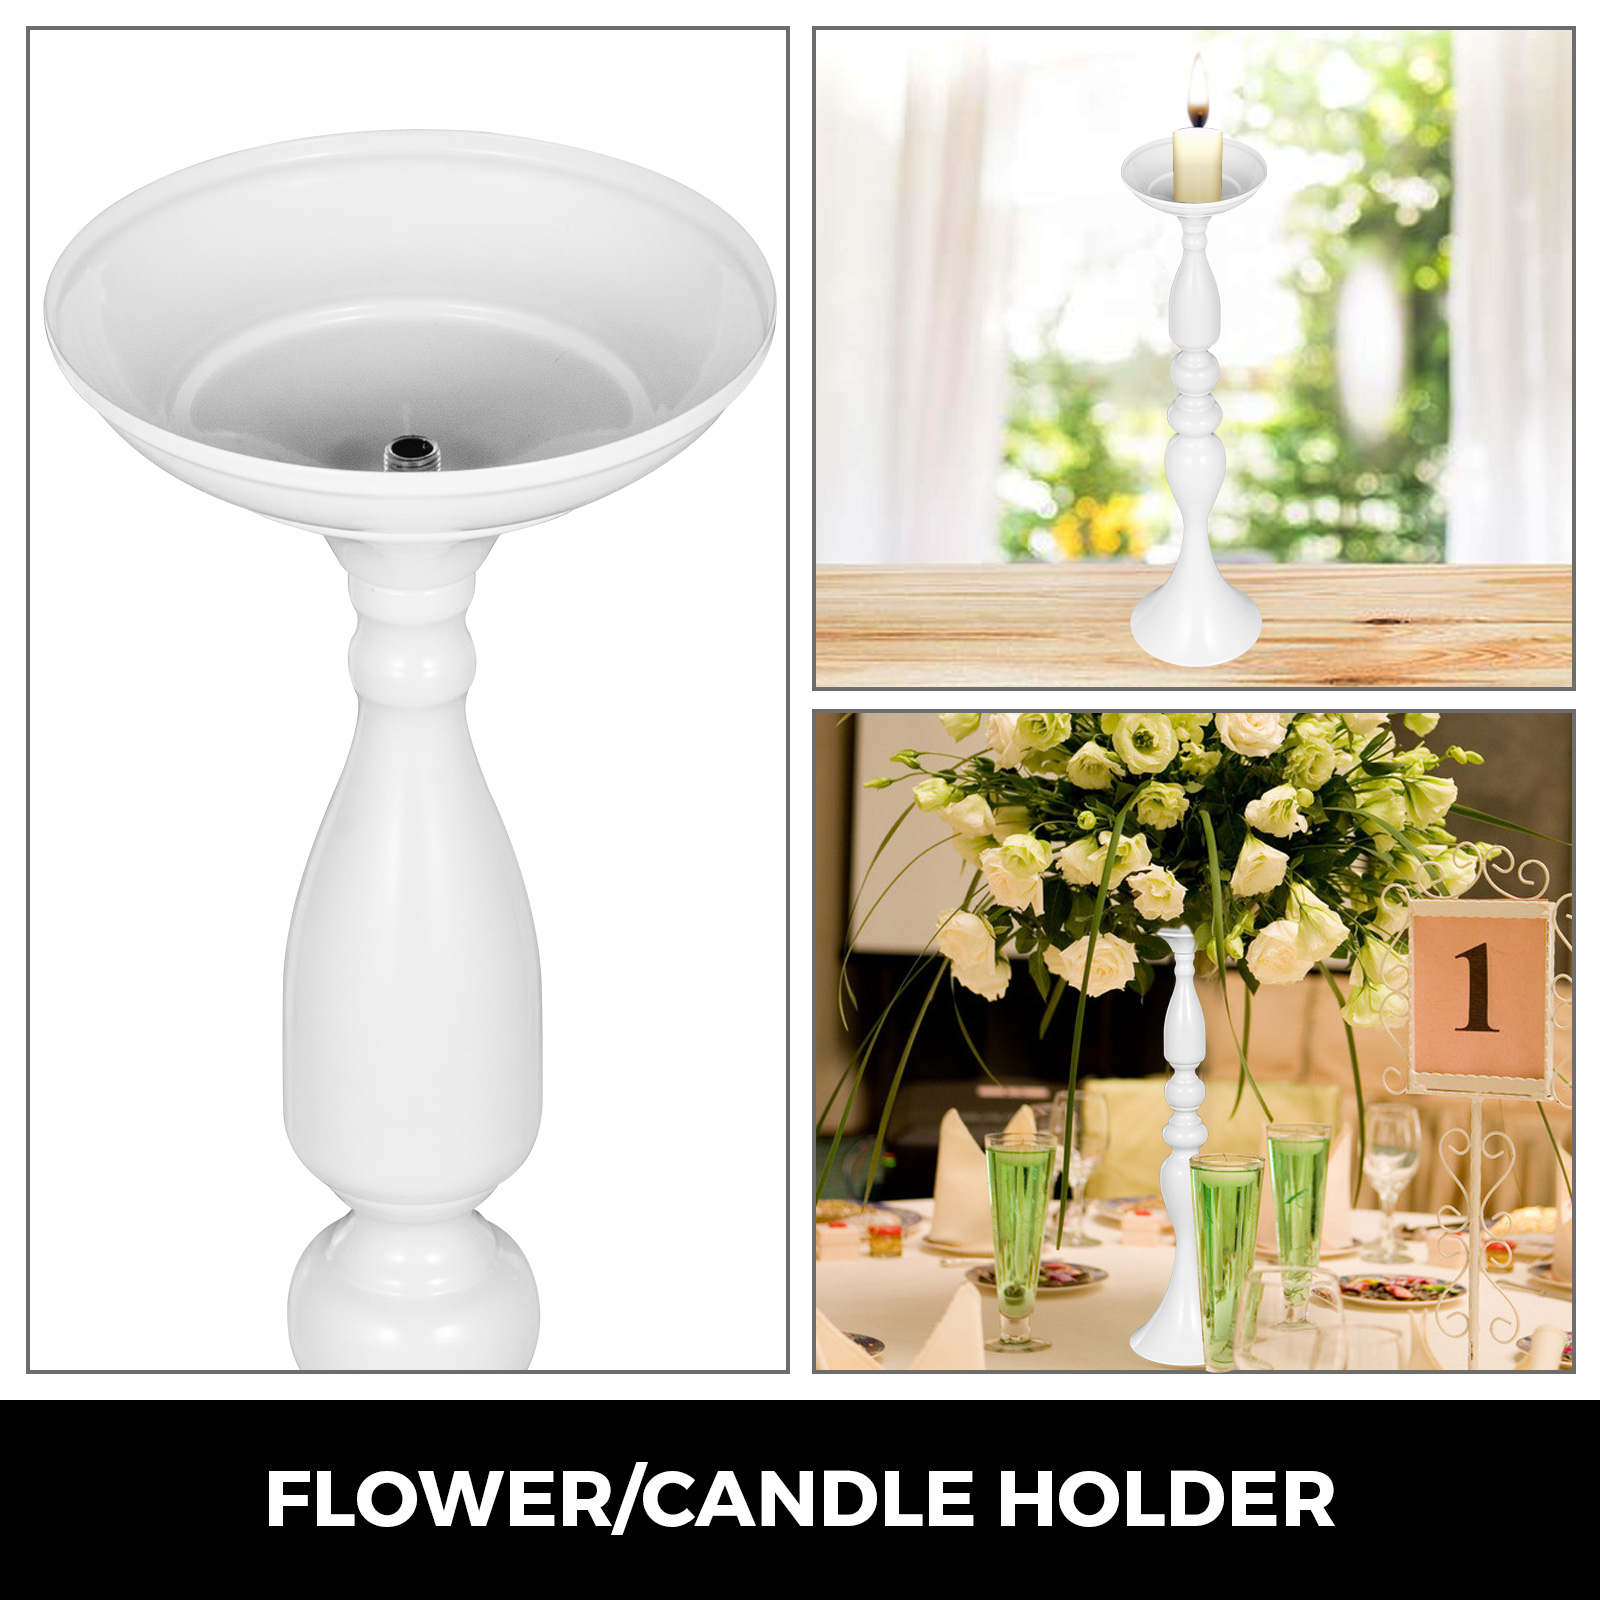 Flower-Rack-for-Wedding-Metal-Candle-Stand-4-11pcs-Centerpiece-Flower-Vase thumbnail 135